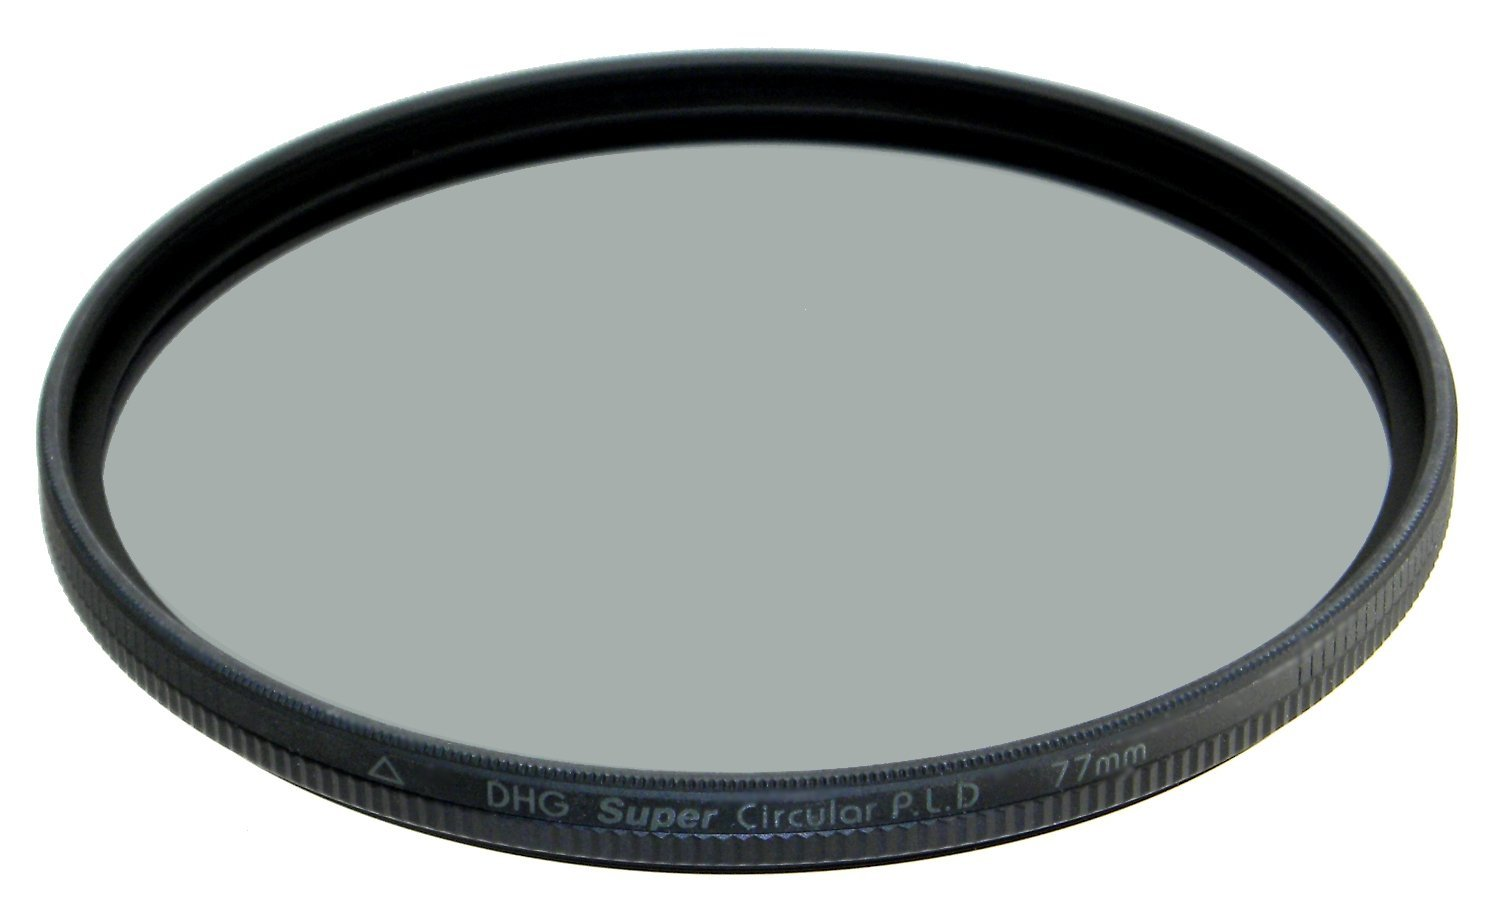 Marumi DHG Super Circular Polarizer CPL PL.D 77 77mm Filter Japan